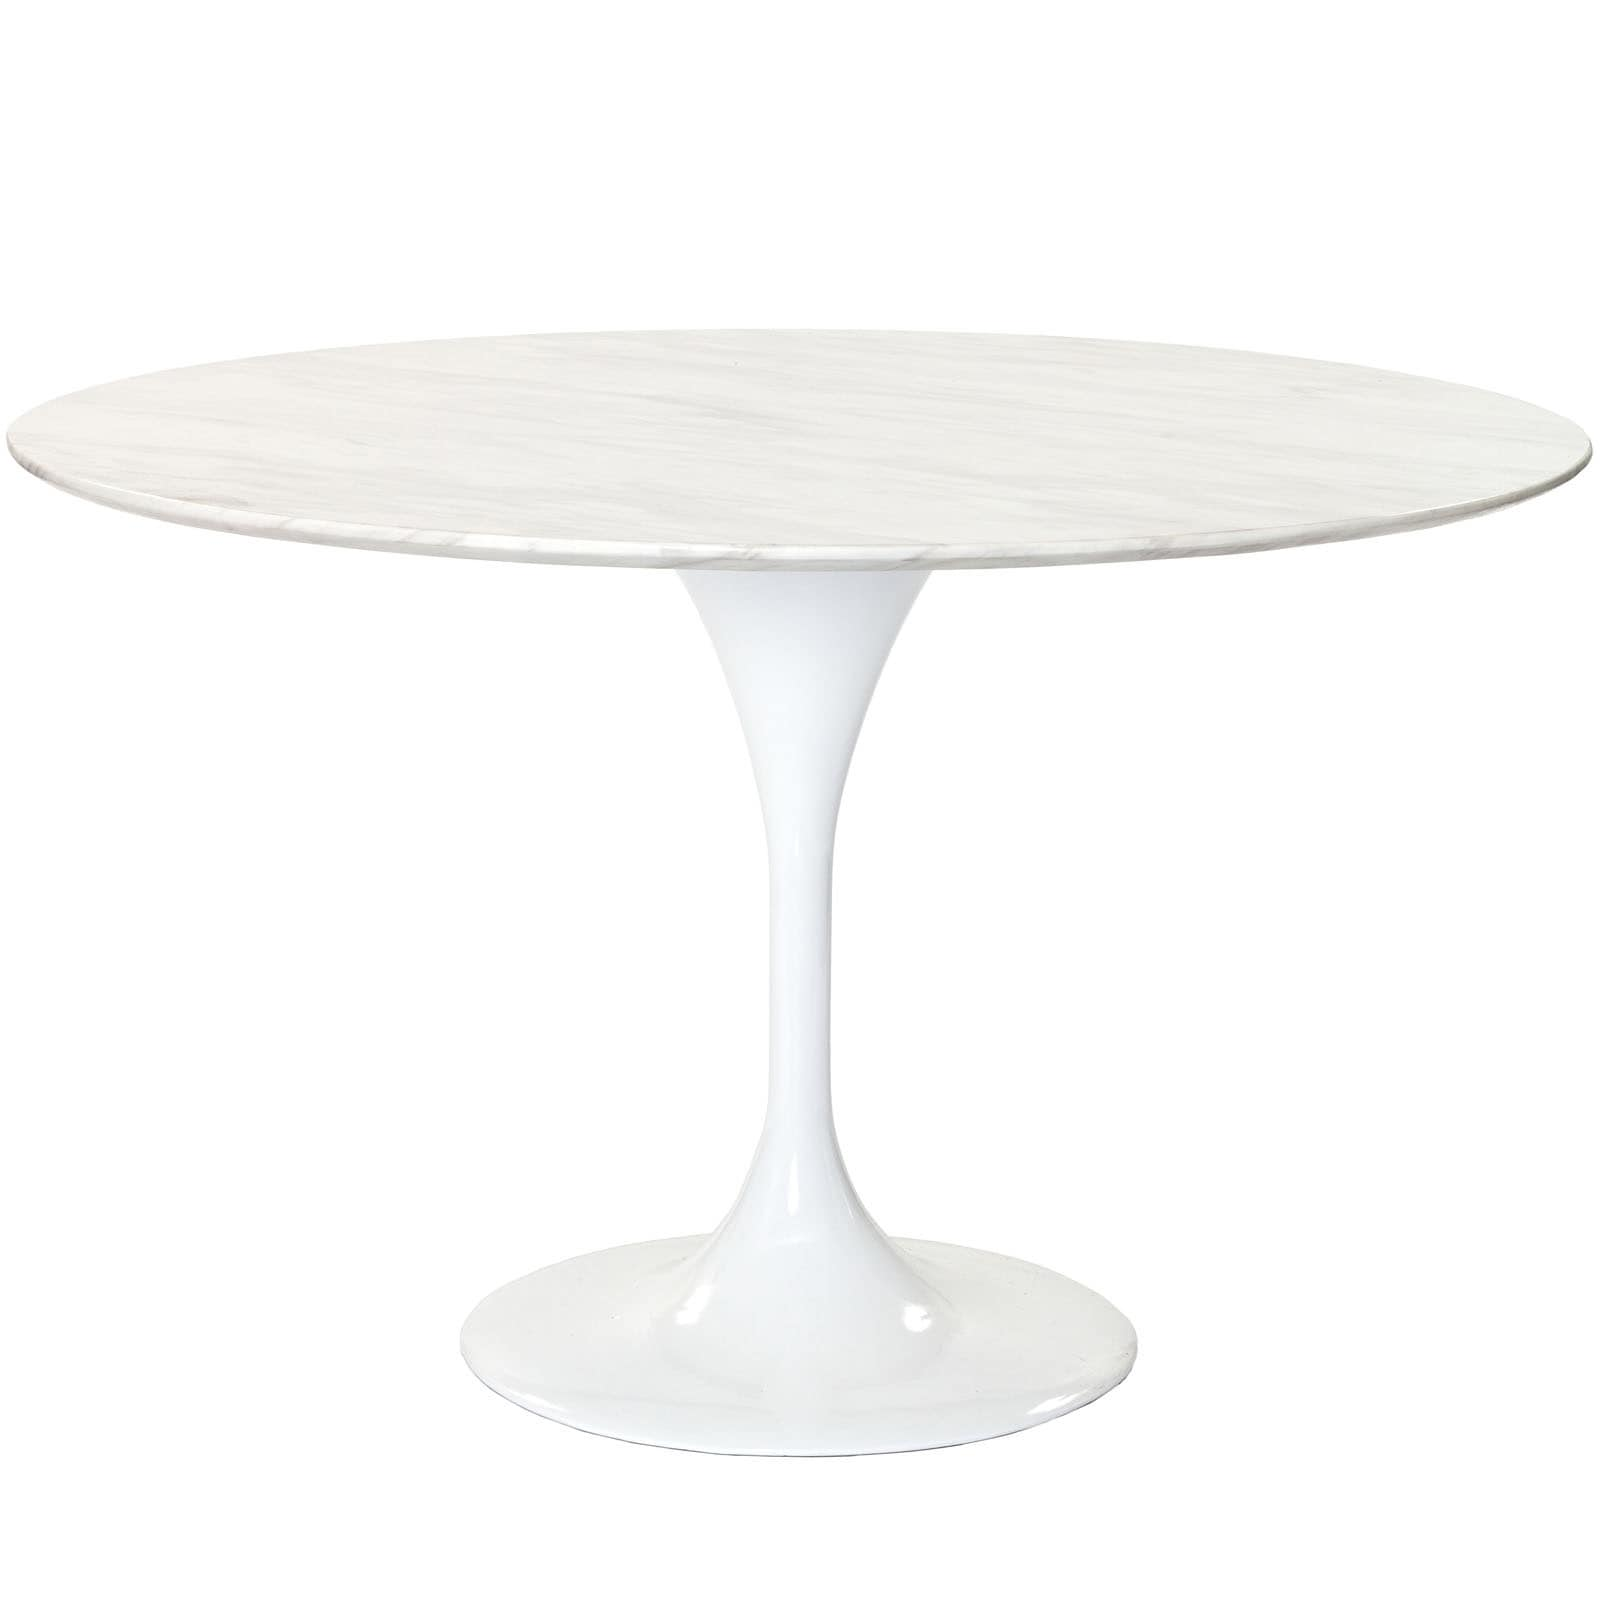 Lovely Shop Eero Saarinen Reproduction 48 Inch White Marble Tulip Dining Table    On Sale   Free Shipping Today   Overstock.com   6677342